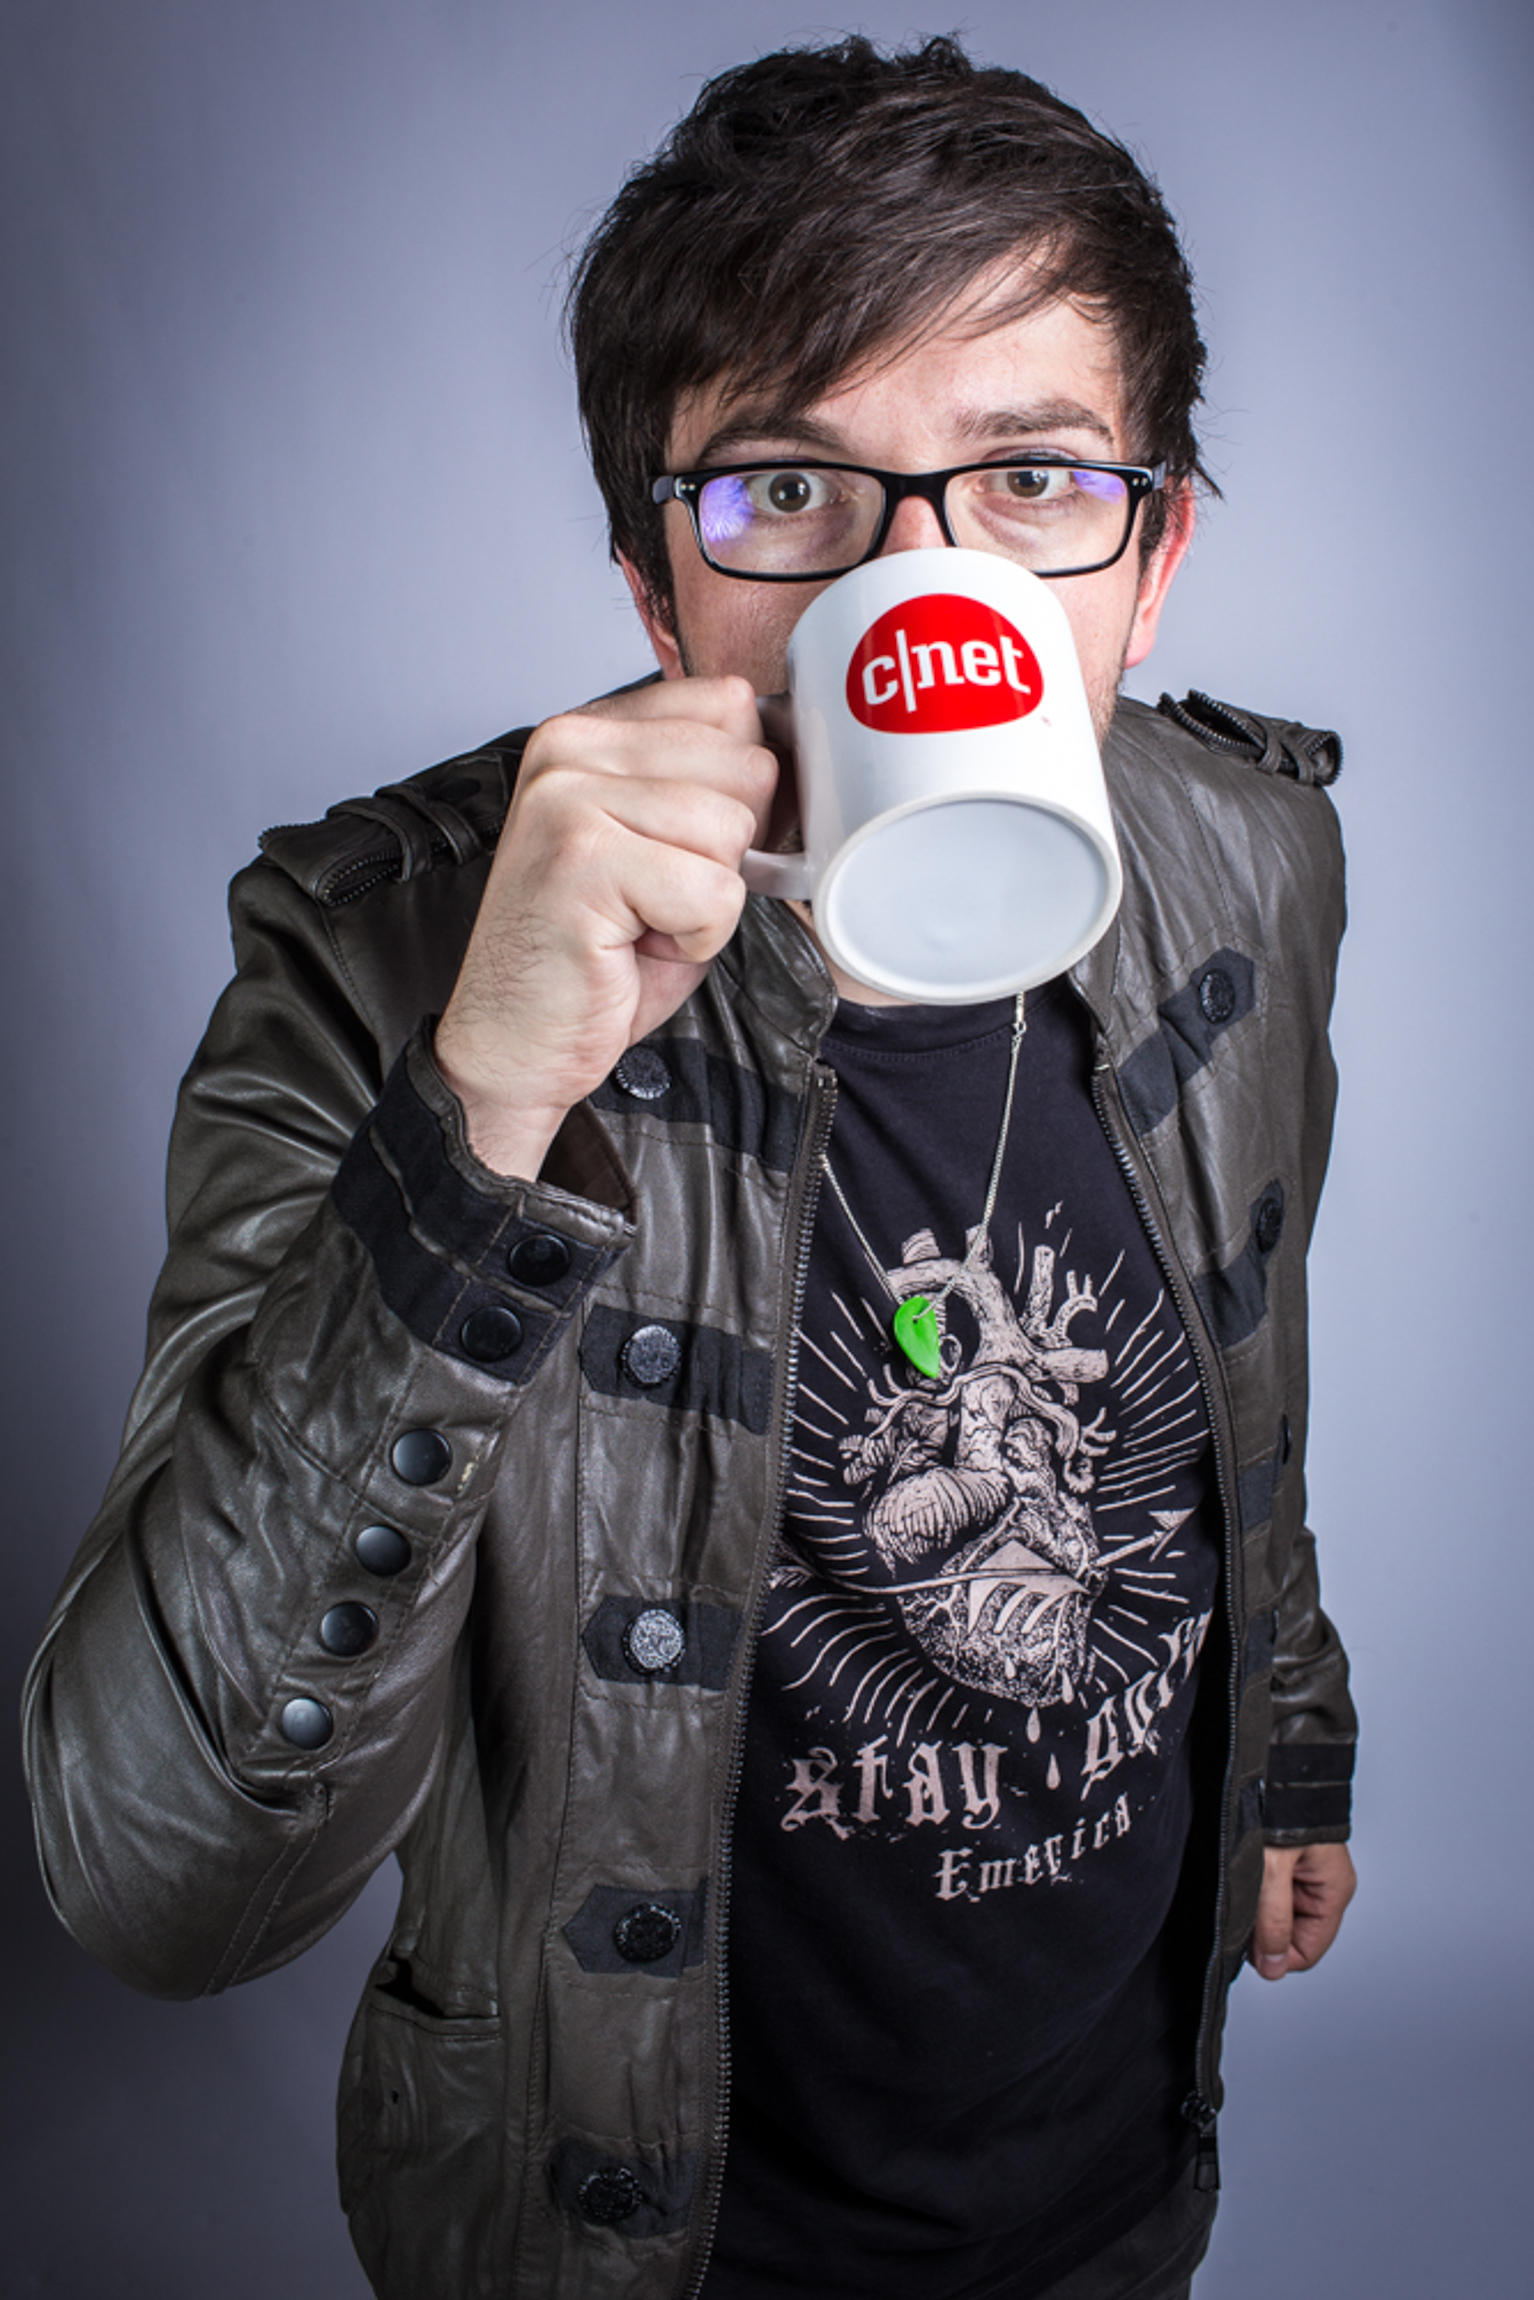 andy-radio-cup